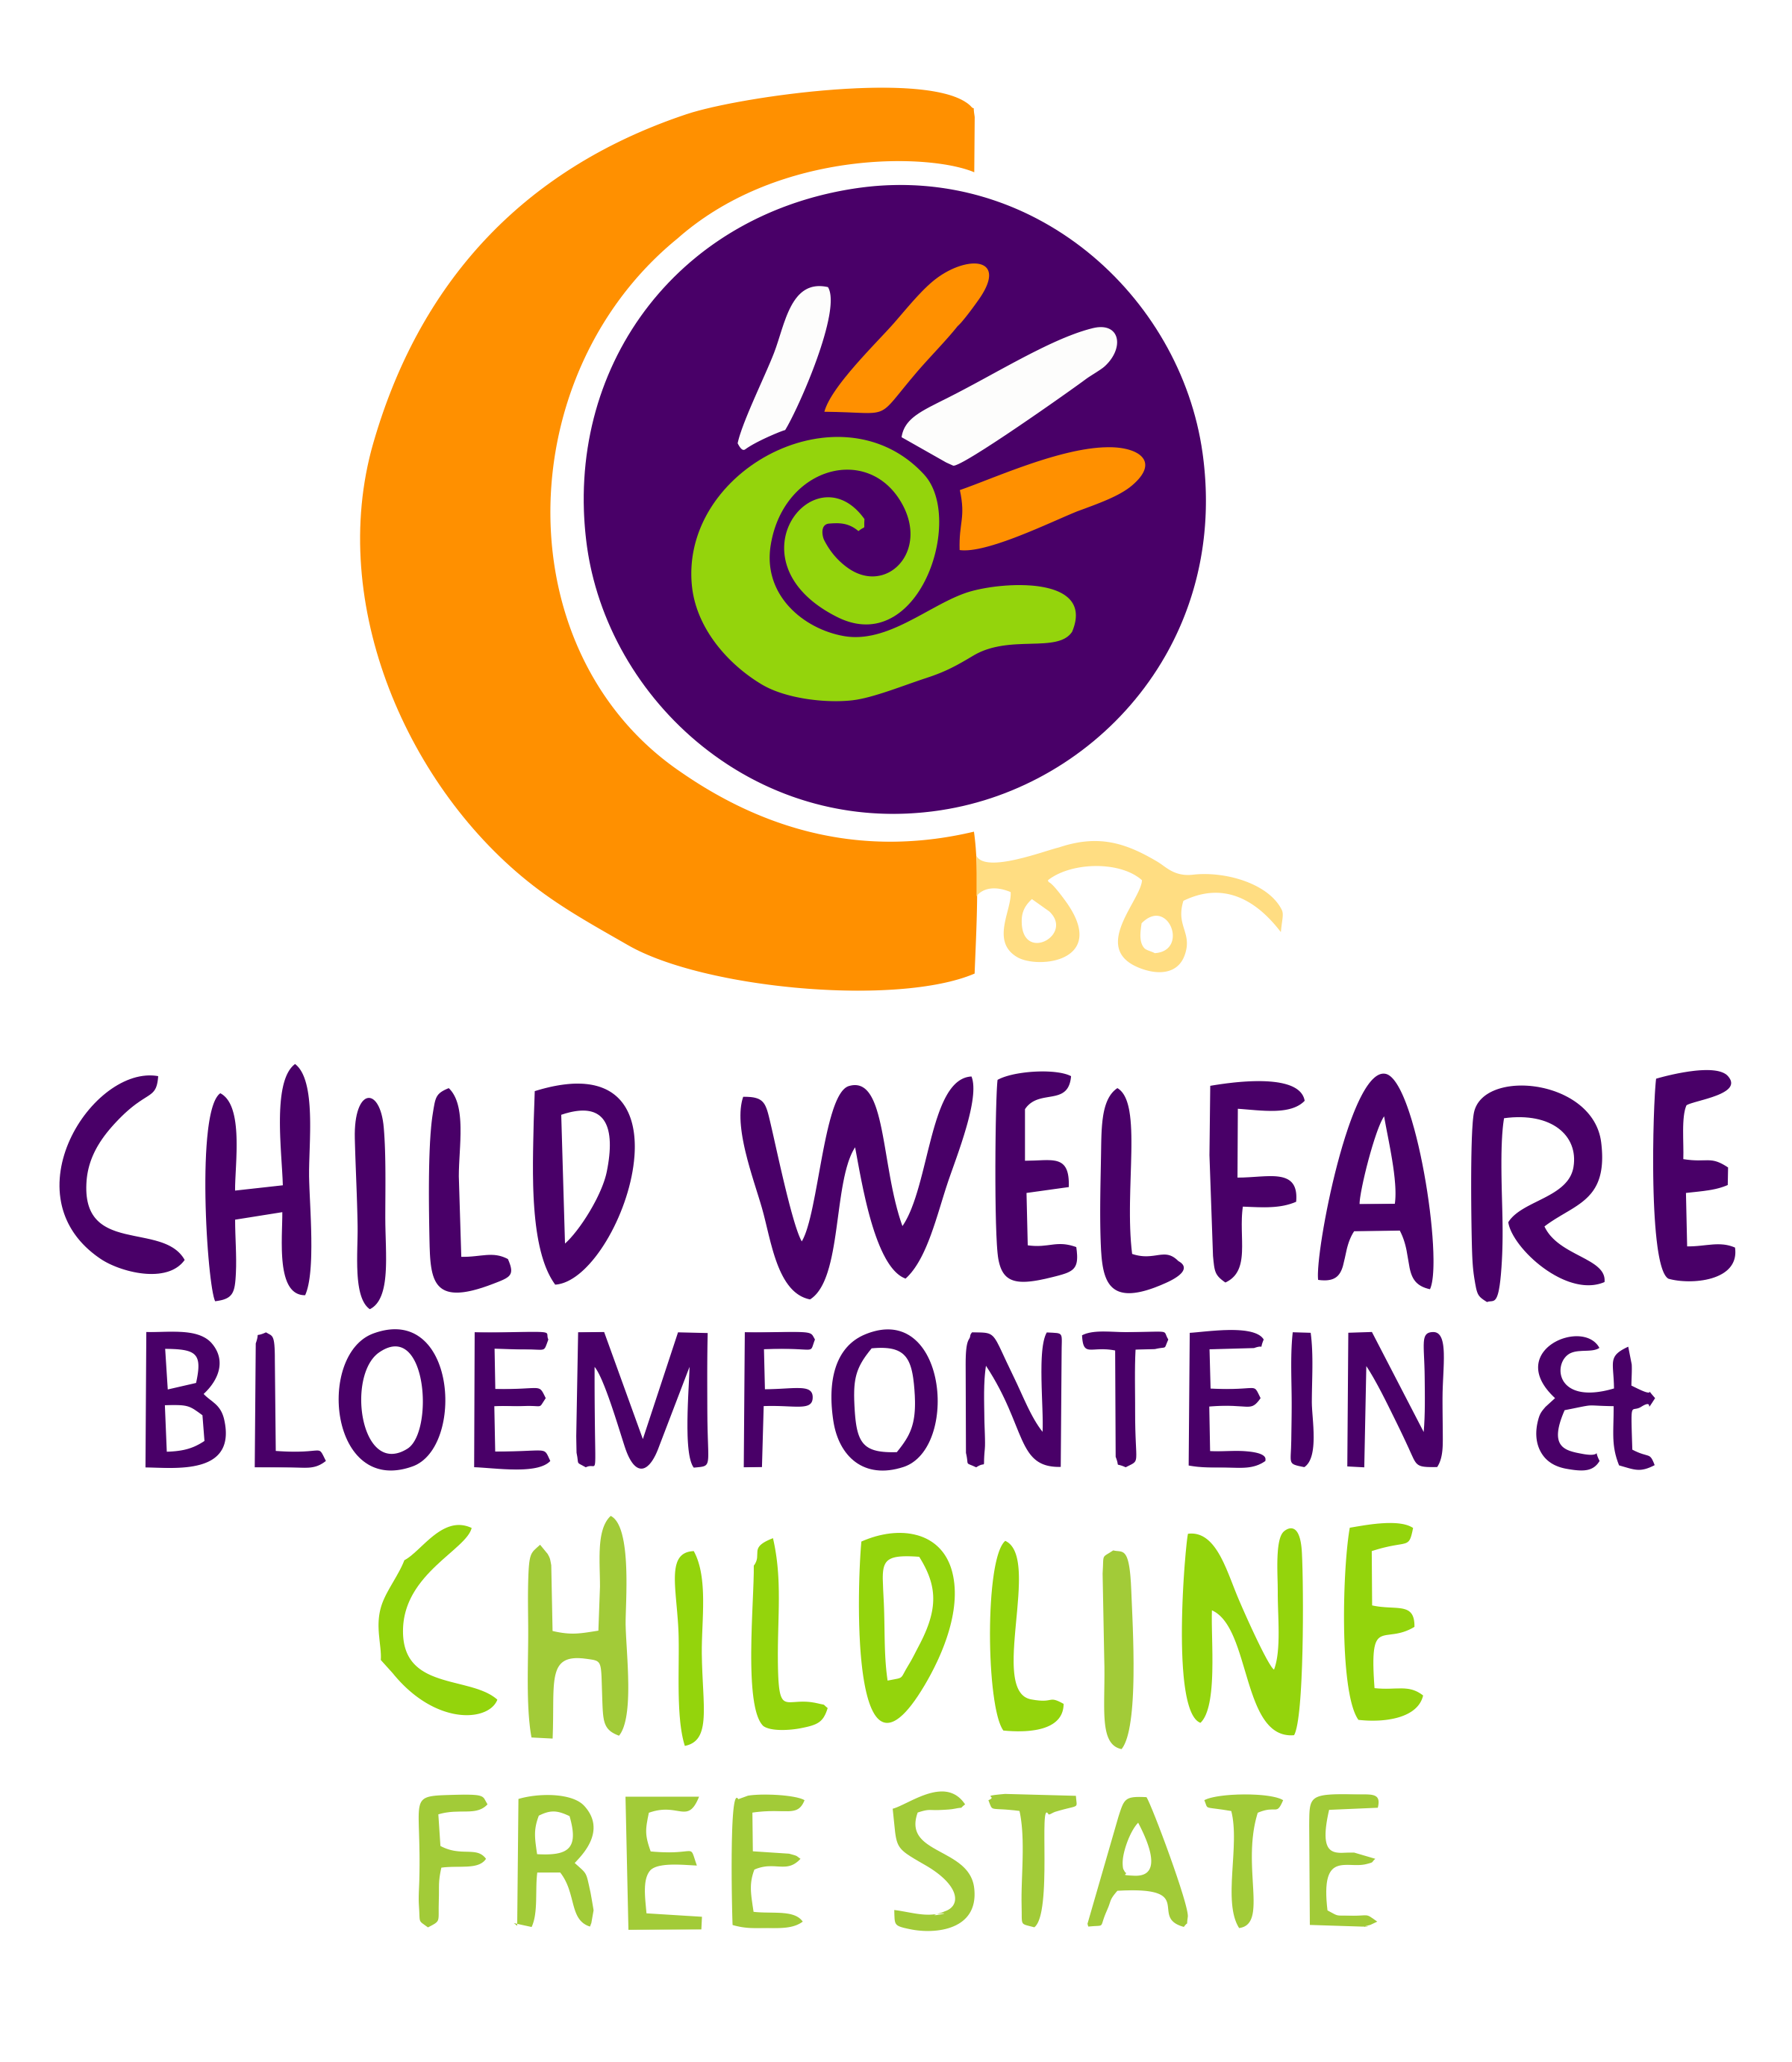 Child Welfare Bloemfontein & Childline Free State